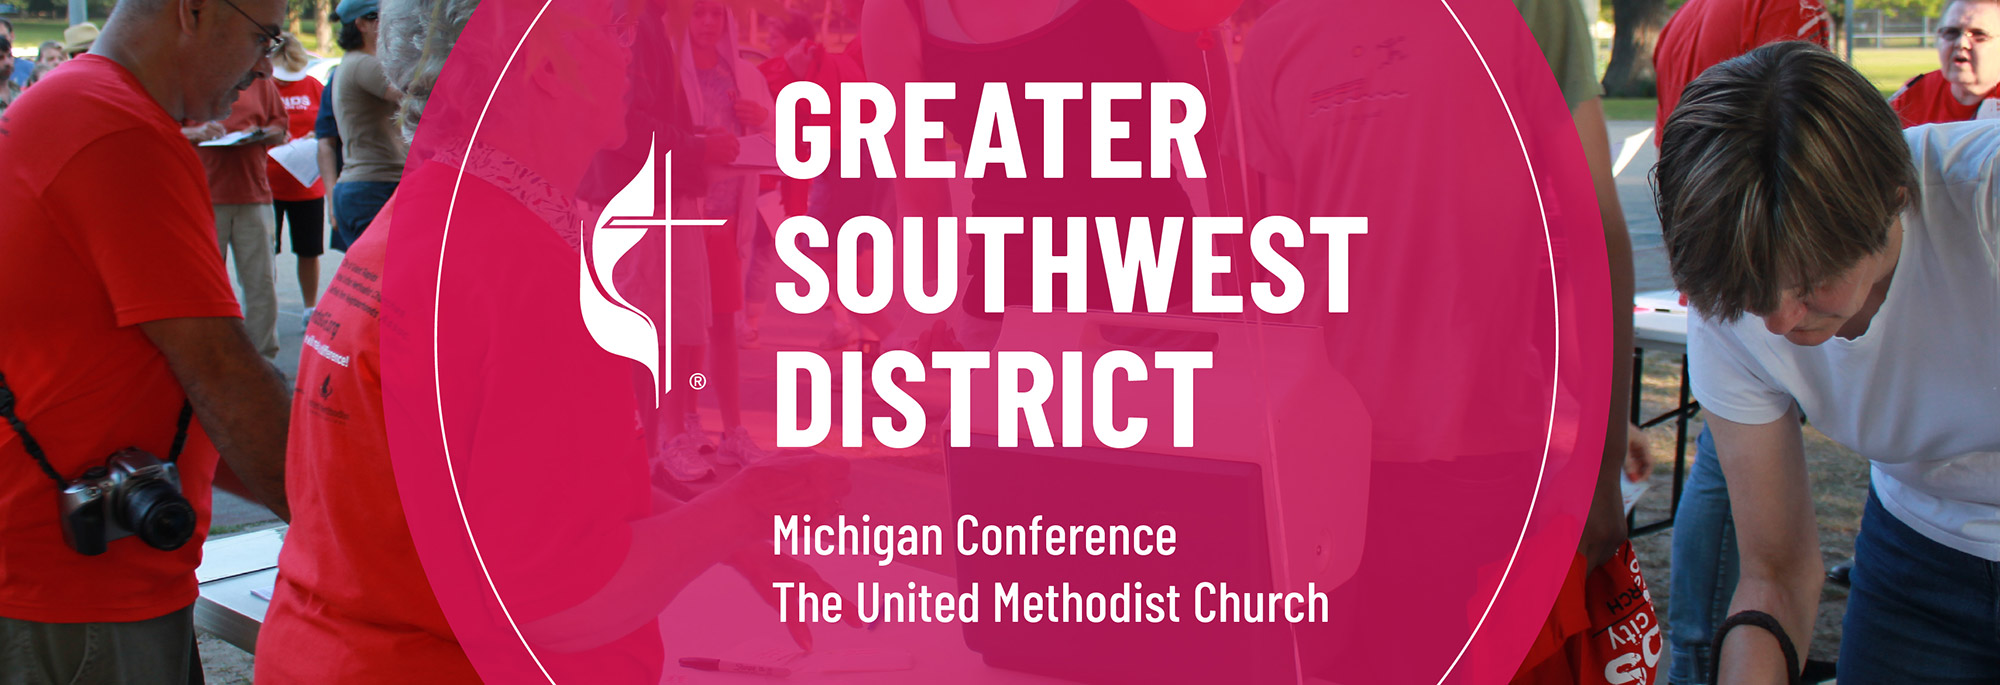 Greater Southwest District Logo